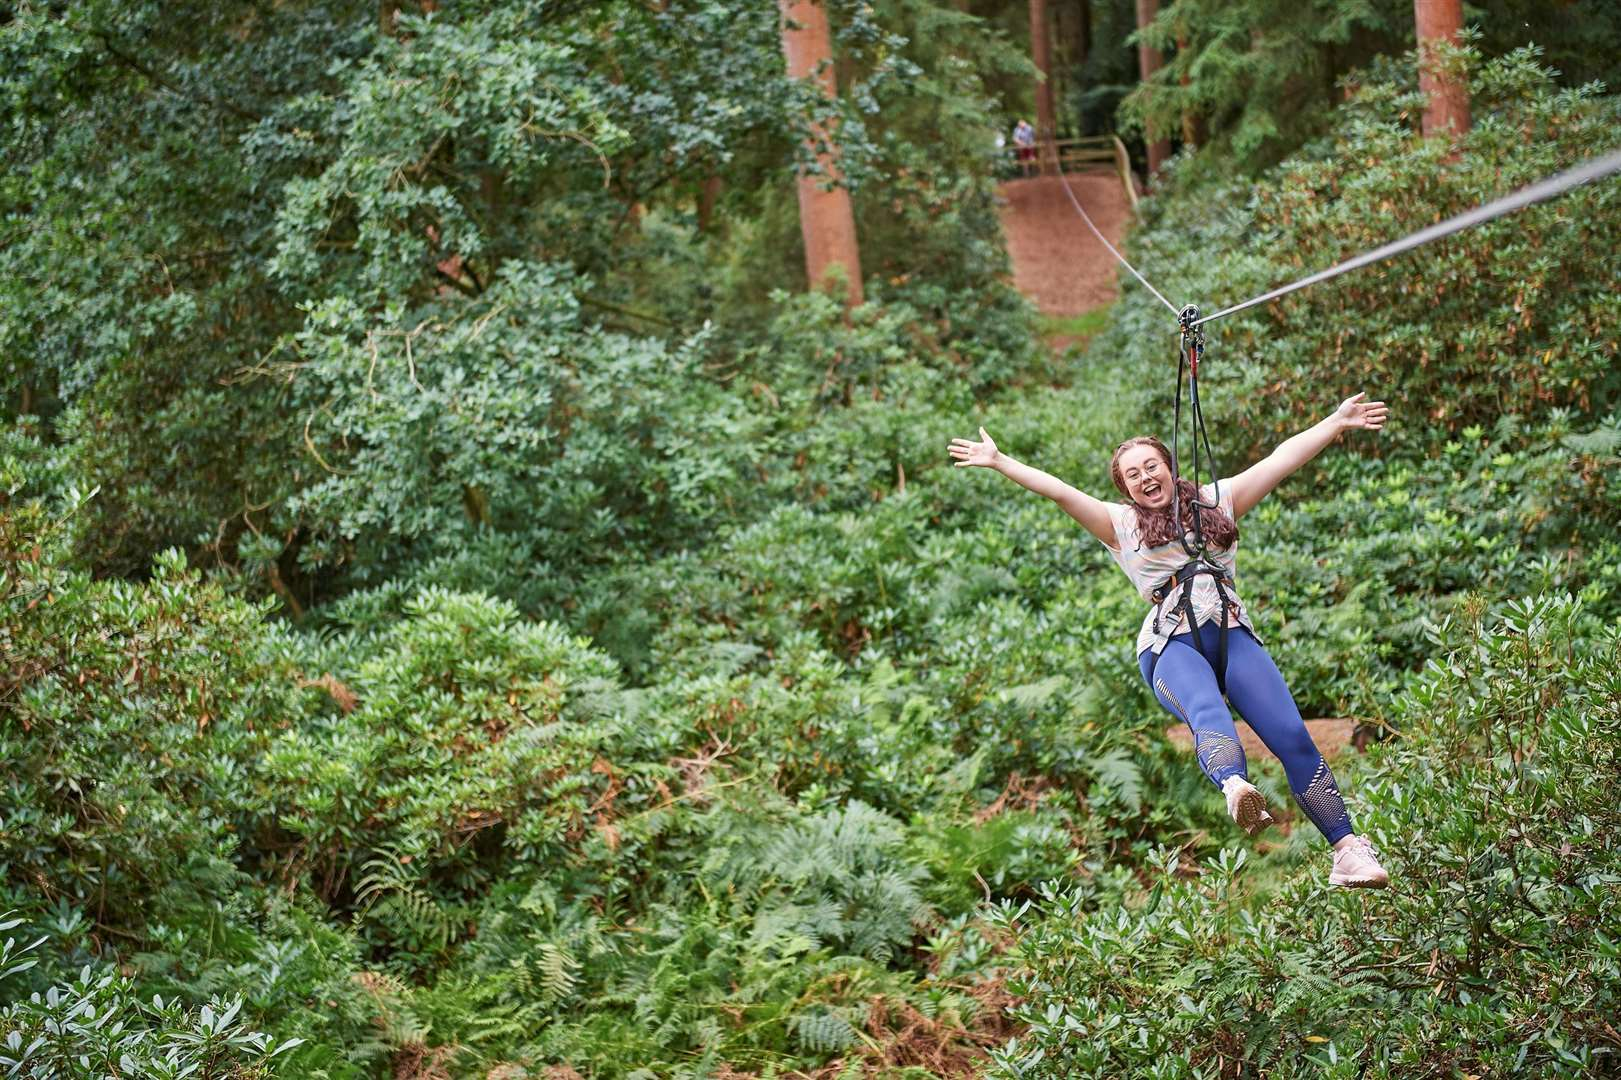 Go Ape at Leeds Castle has a 250m zip wire